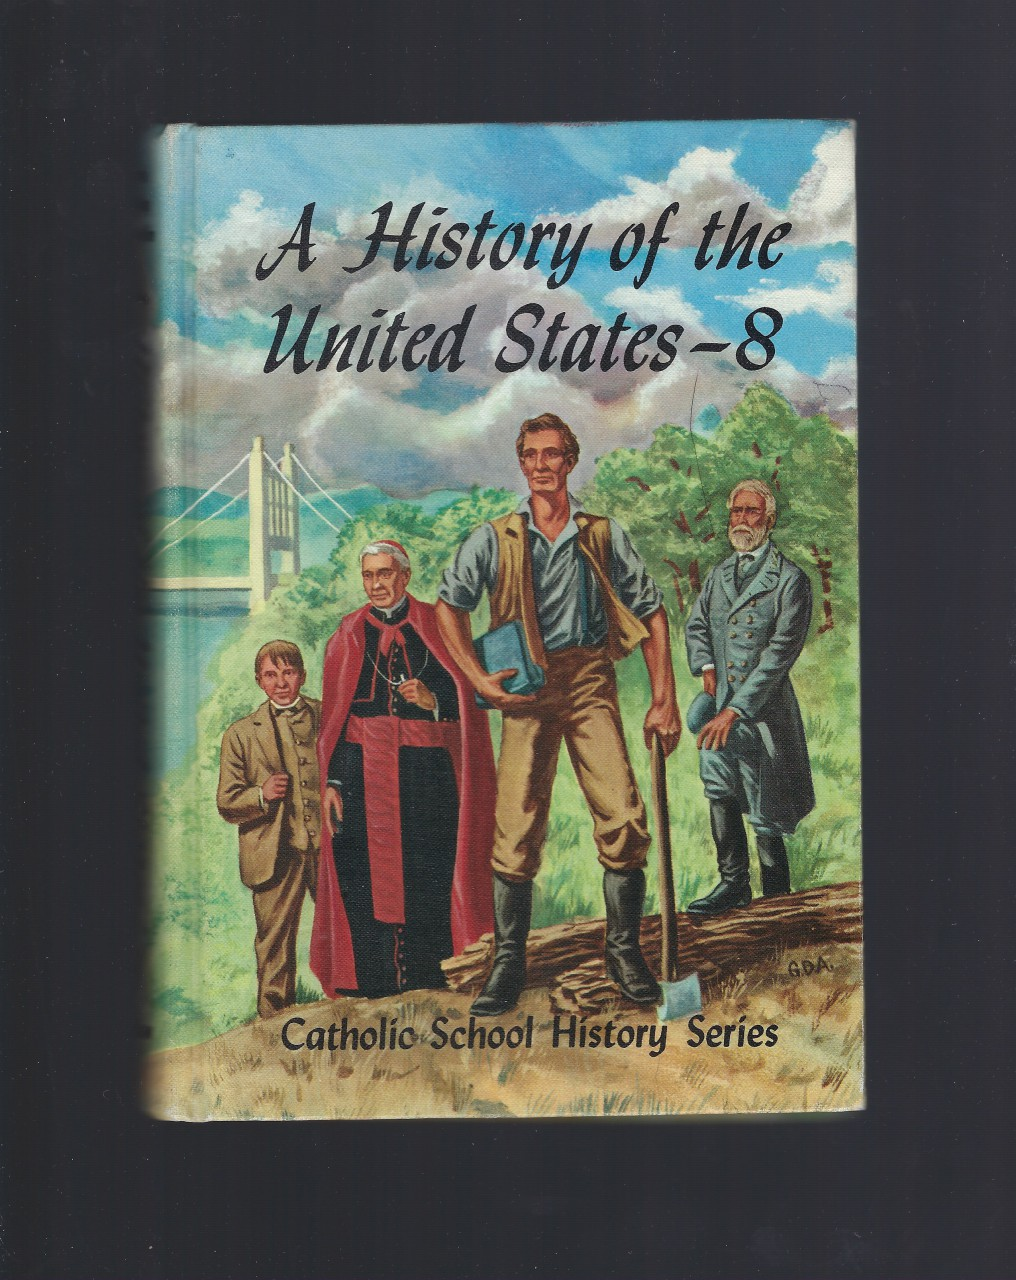 A History Of The United States- 8 Catholic School History Series 1959, Right Rev. Msgr. Edmund J Goebel